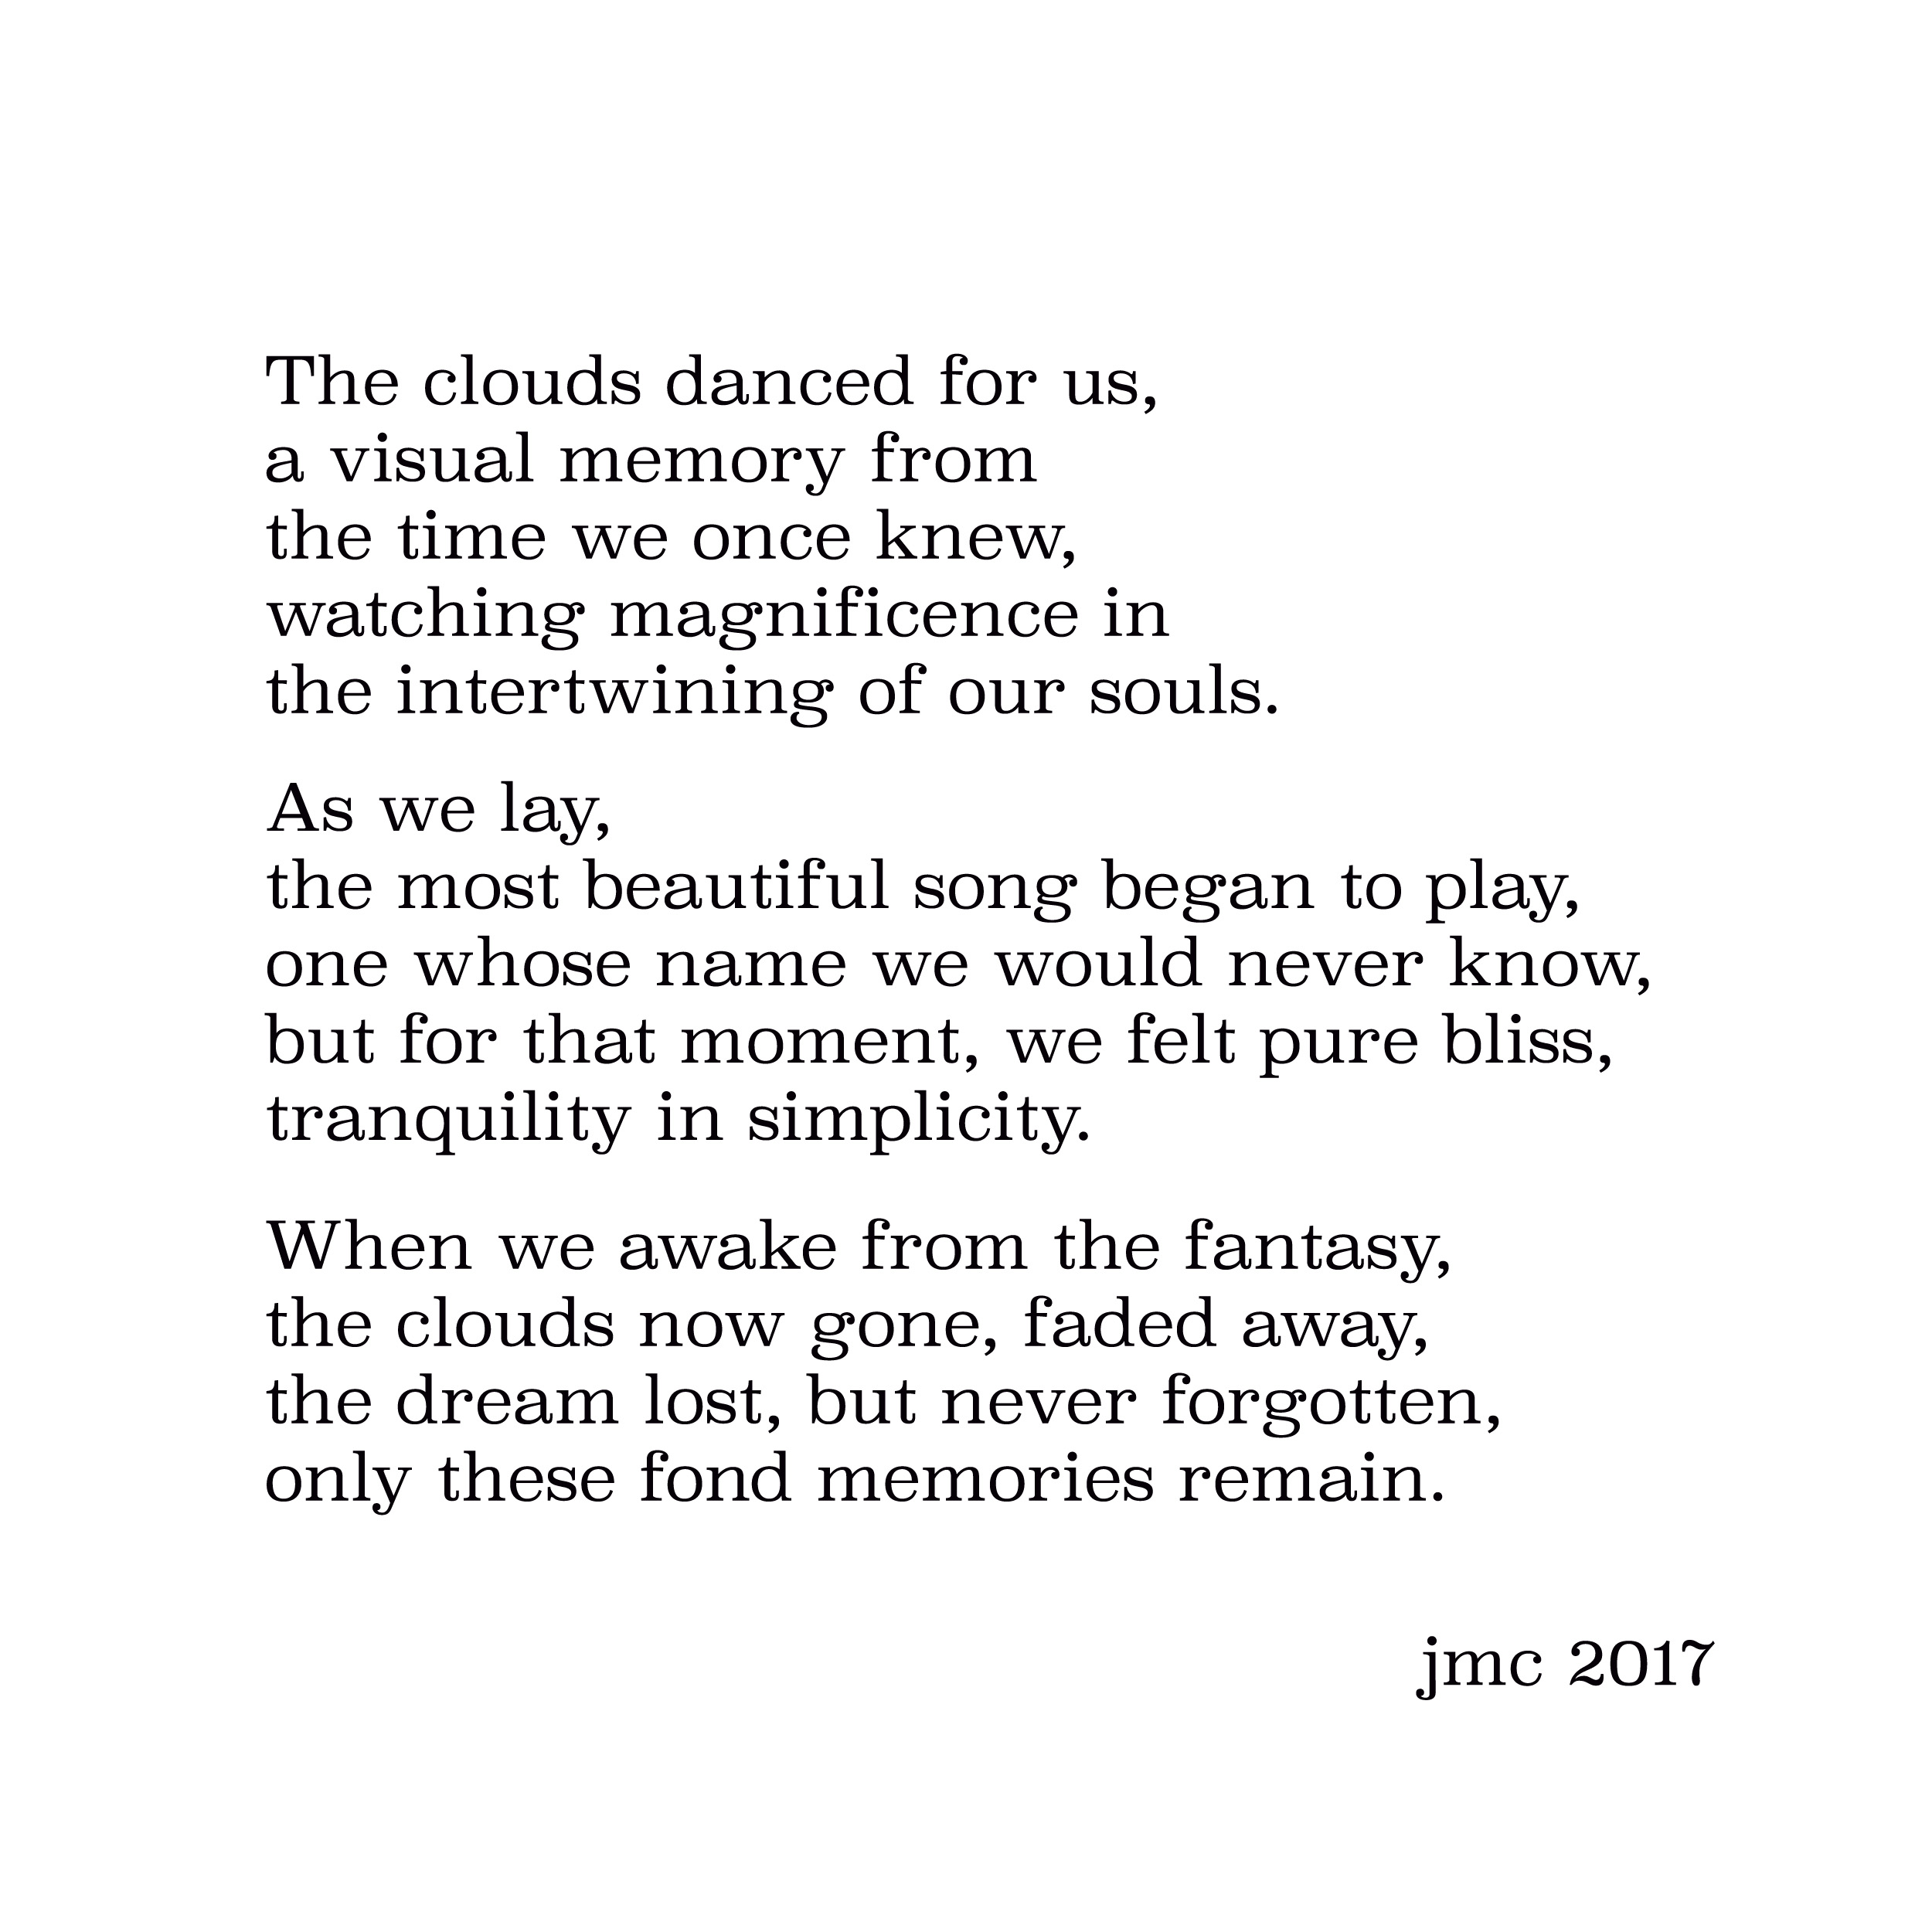 The clouds danced for us.jpg